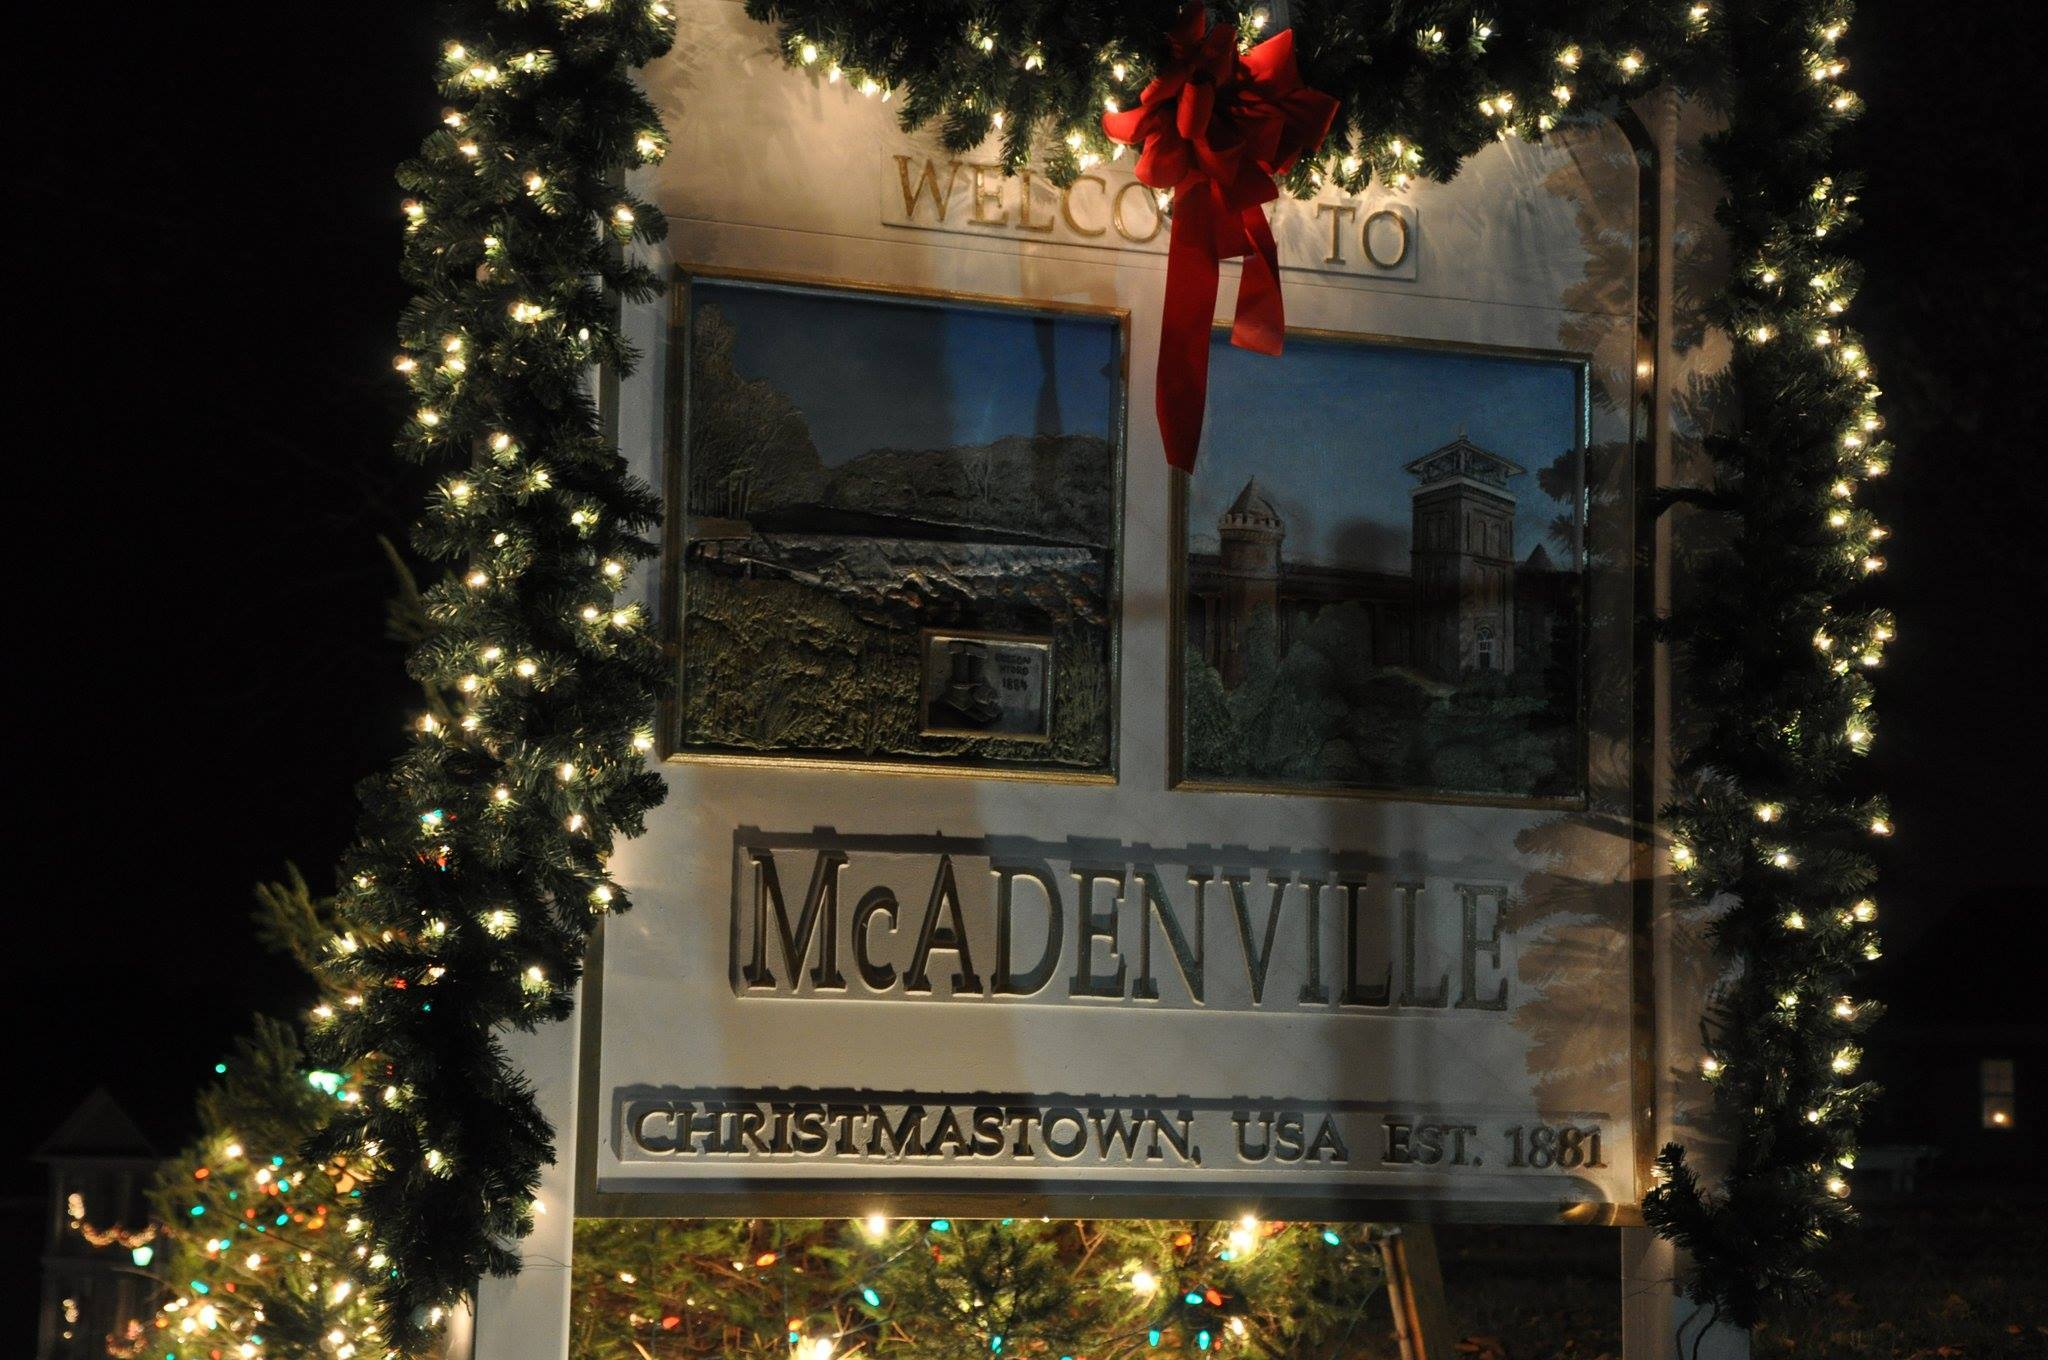 Mcadenville Christmas Lights.2016 Christmas Light Festival In Christmas Town Usa